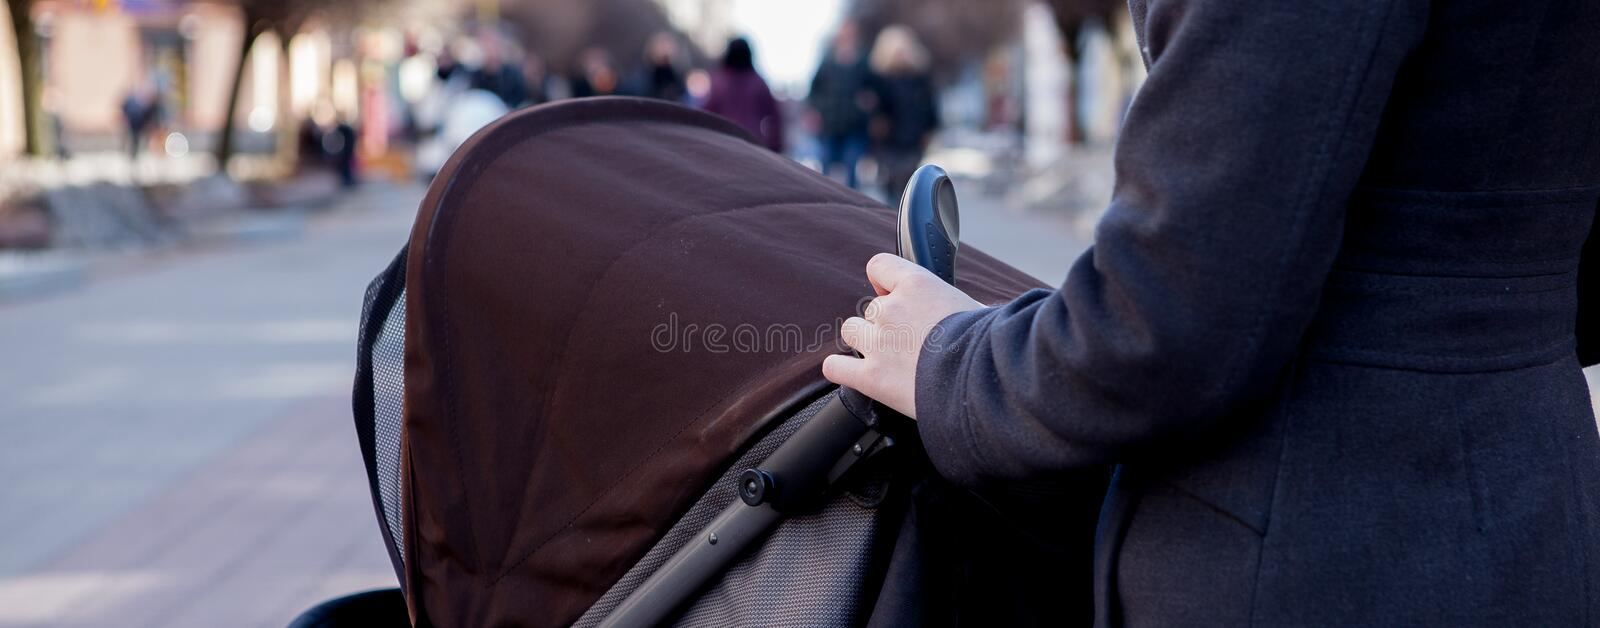 Overhead shot of young mother strolling a carriage. Hands holding stroller handle stock image